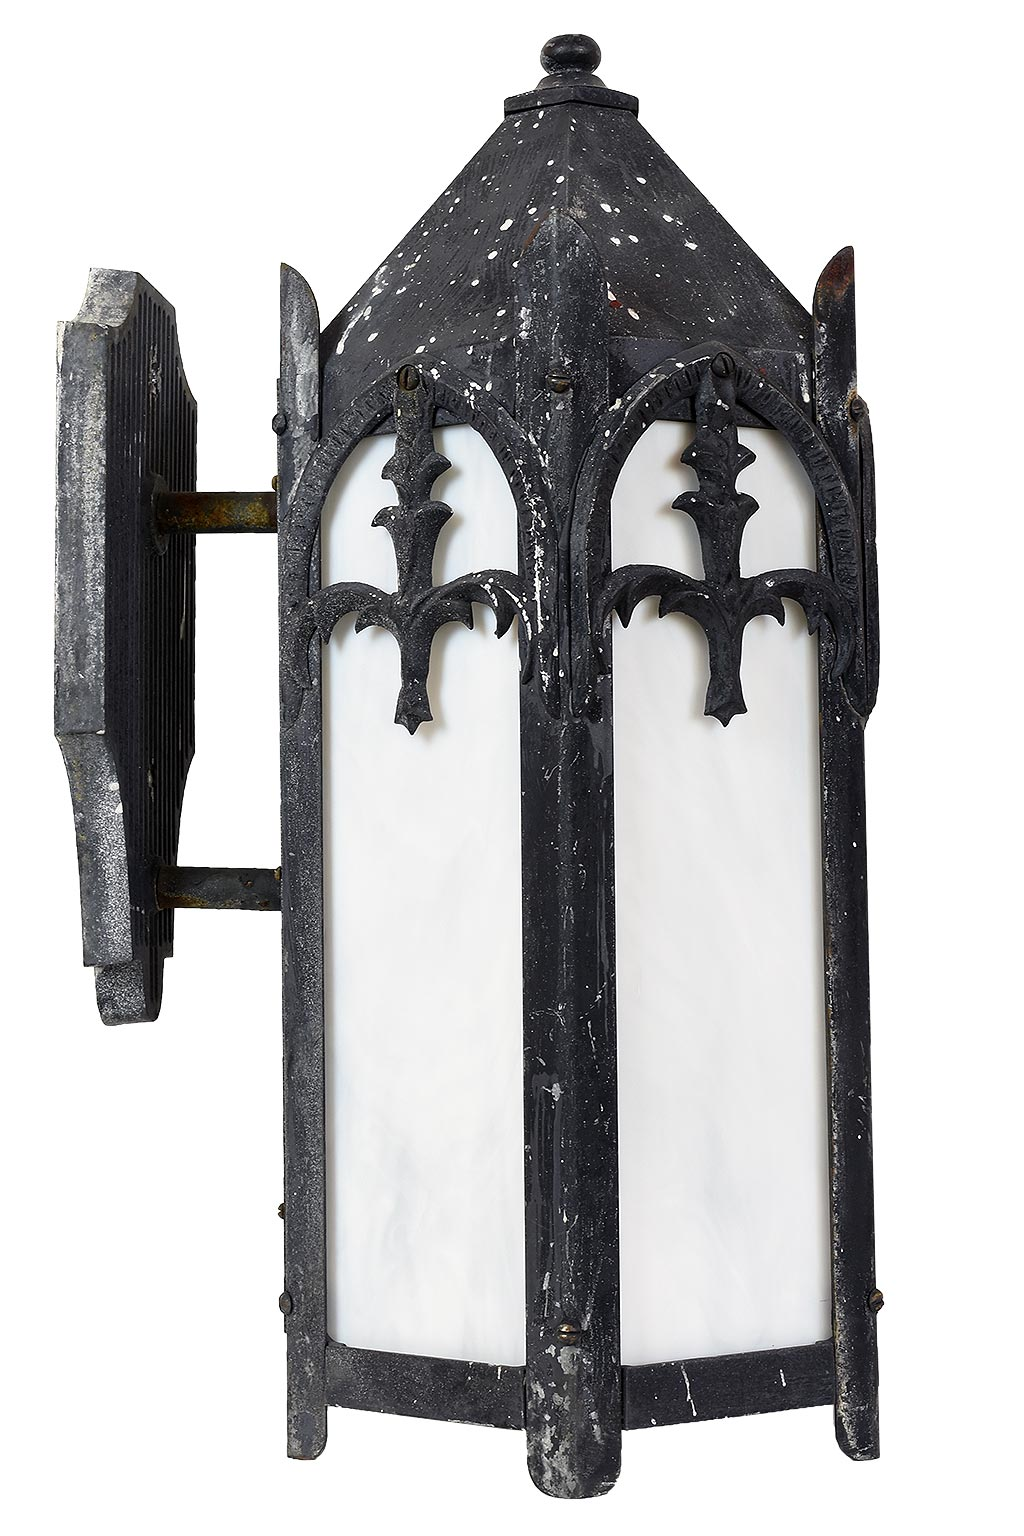 45952-gothic-exterior-sconce-side.jpg